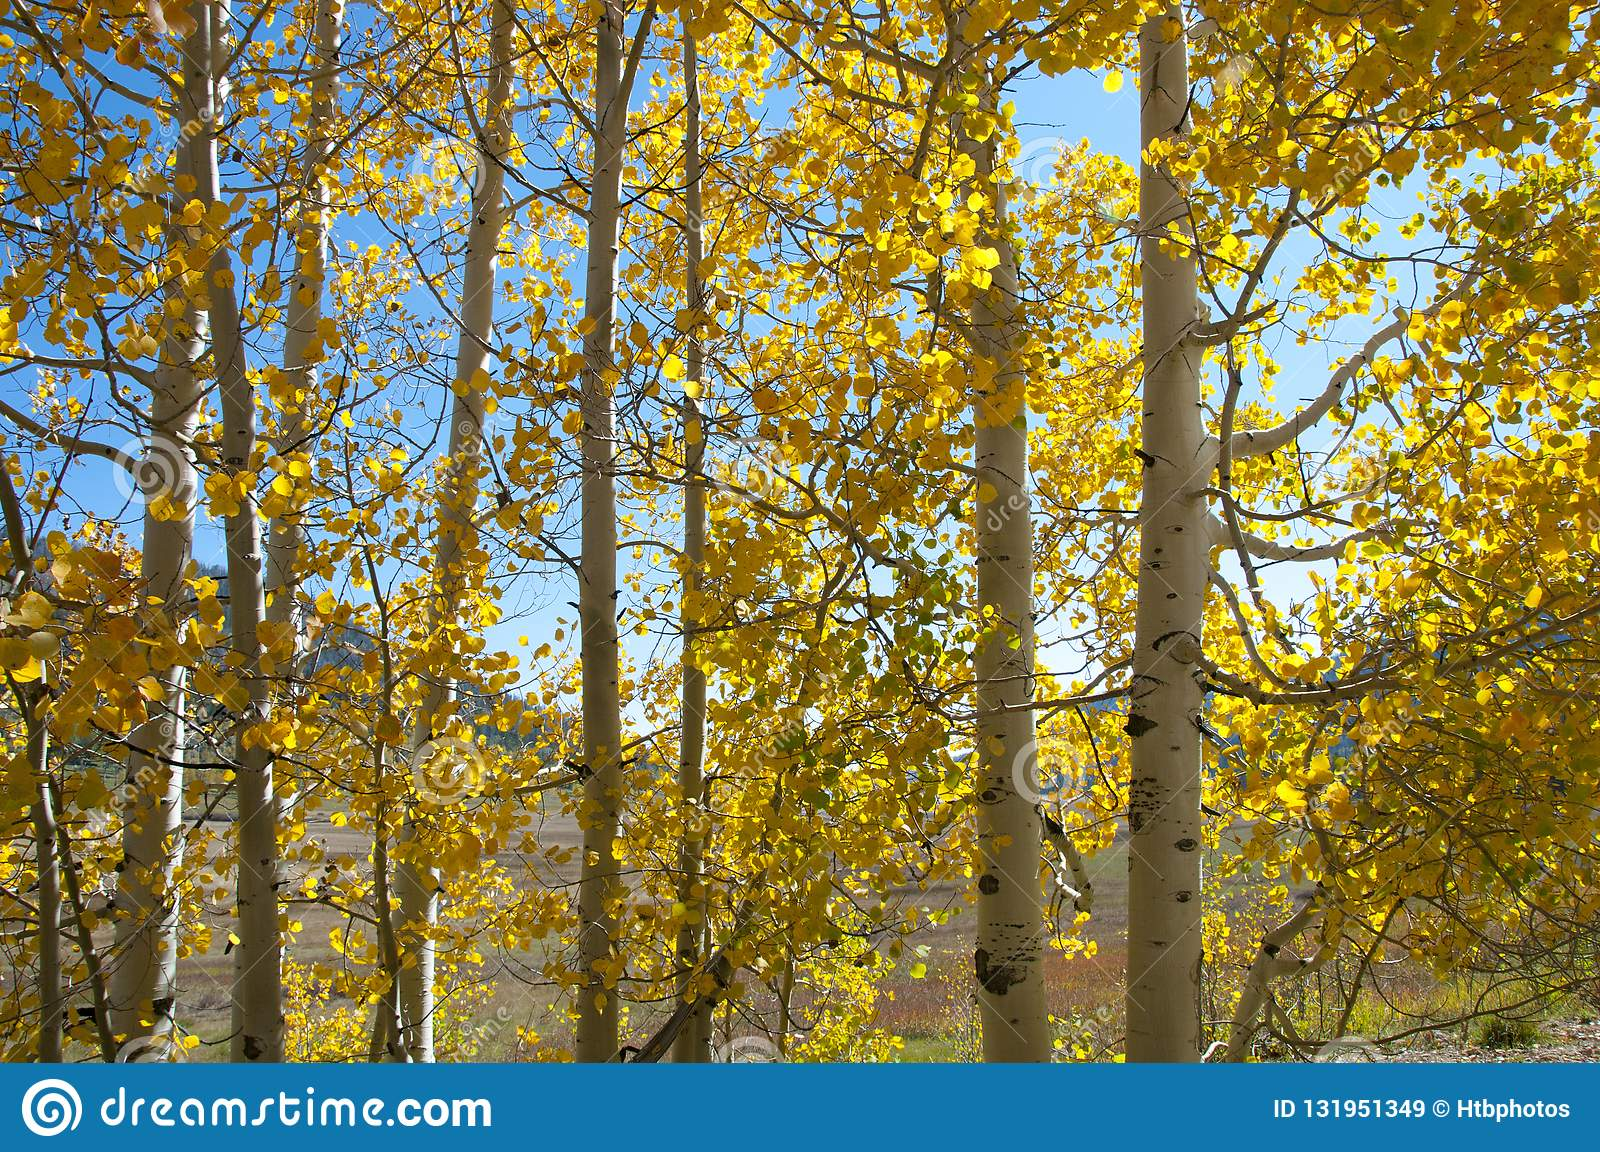 Fall Foliage on Yellow Aspen Trees showing off their Autumn Colors